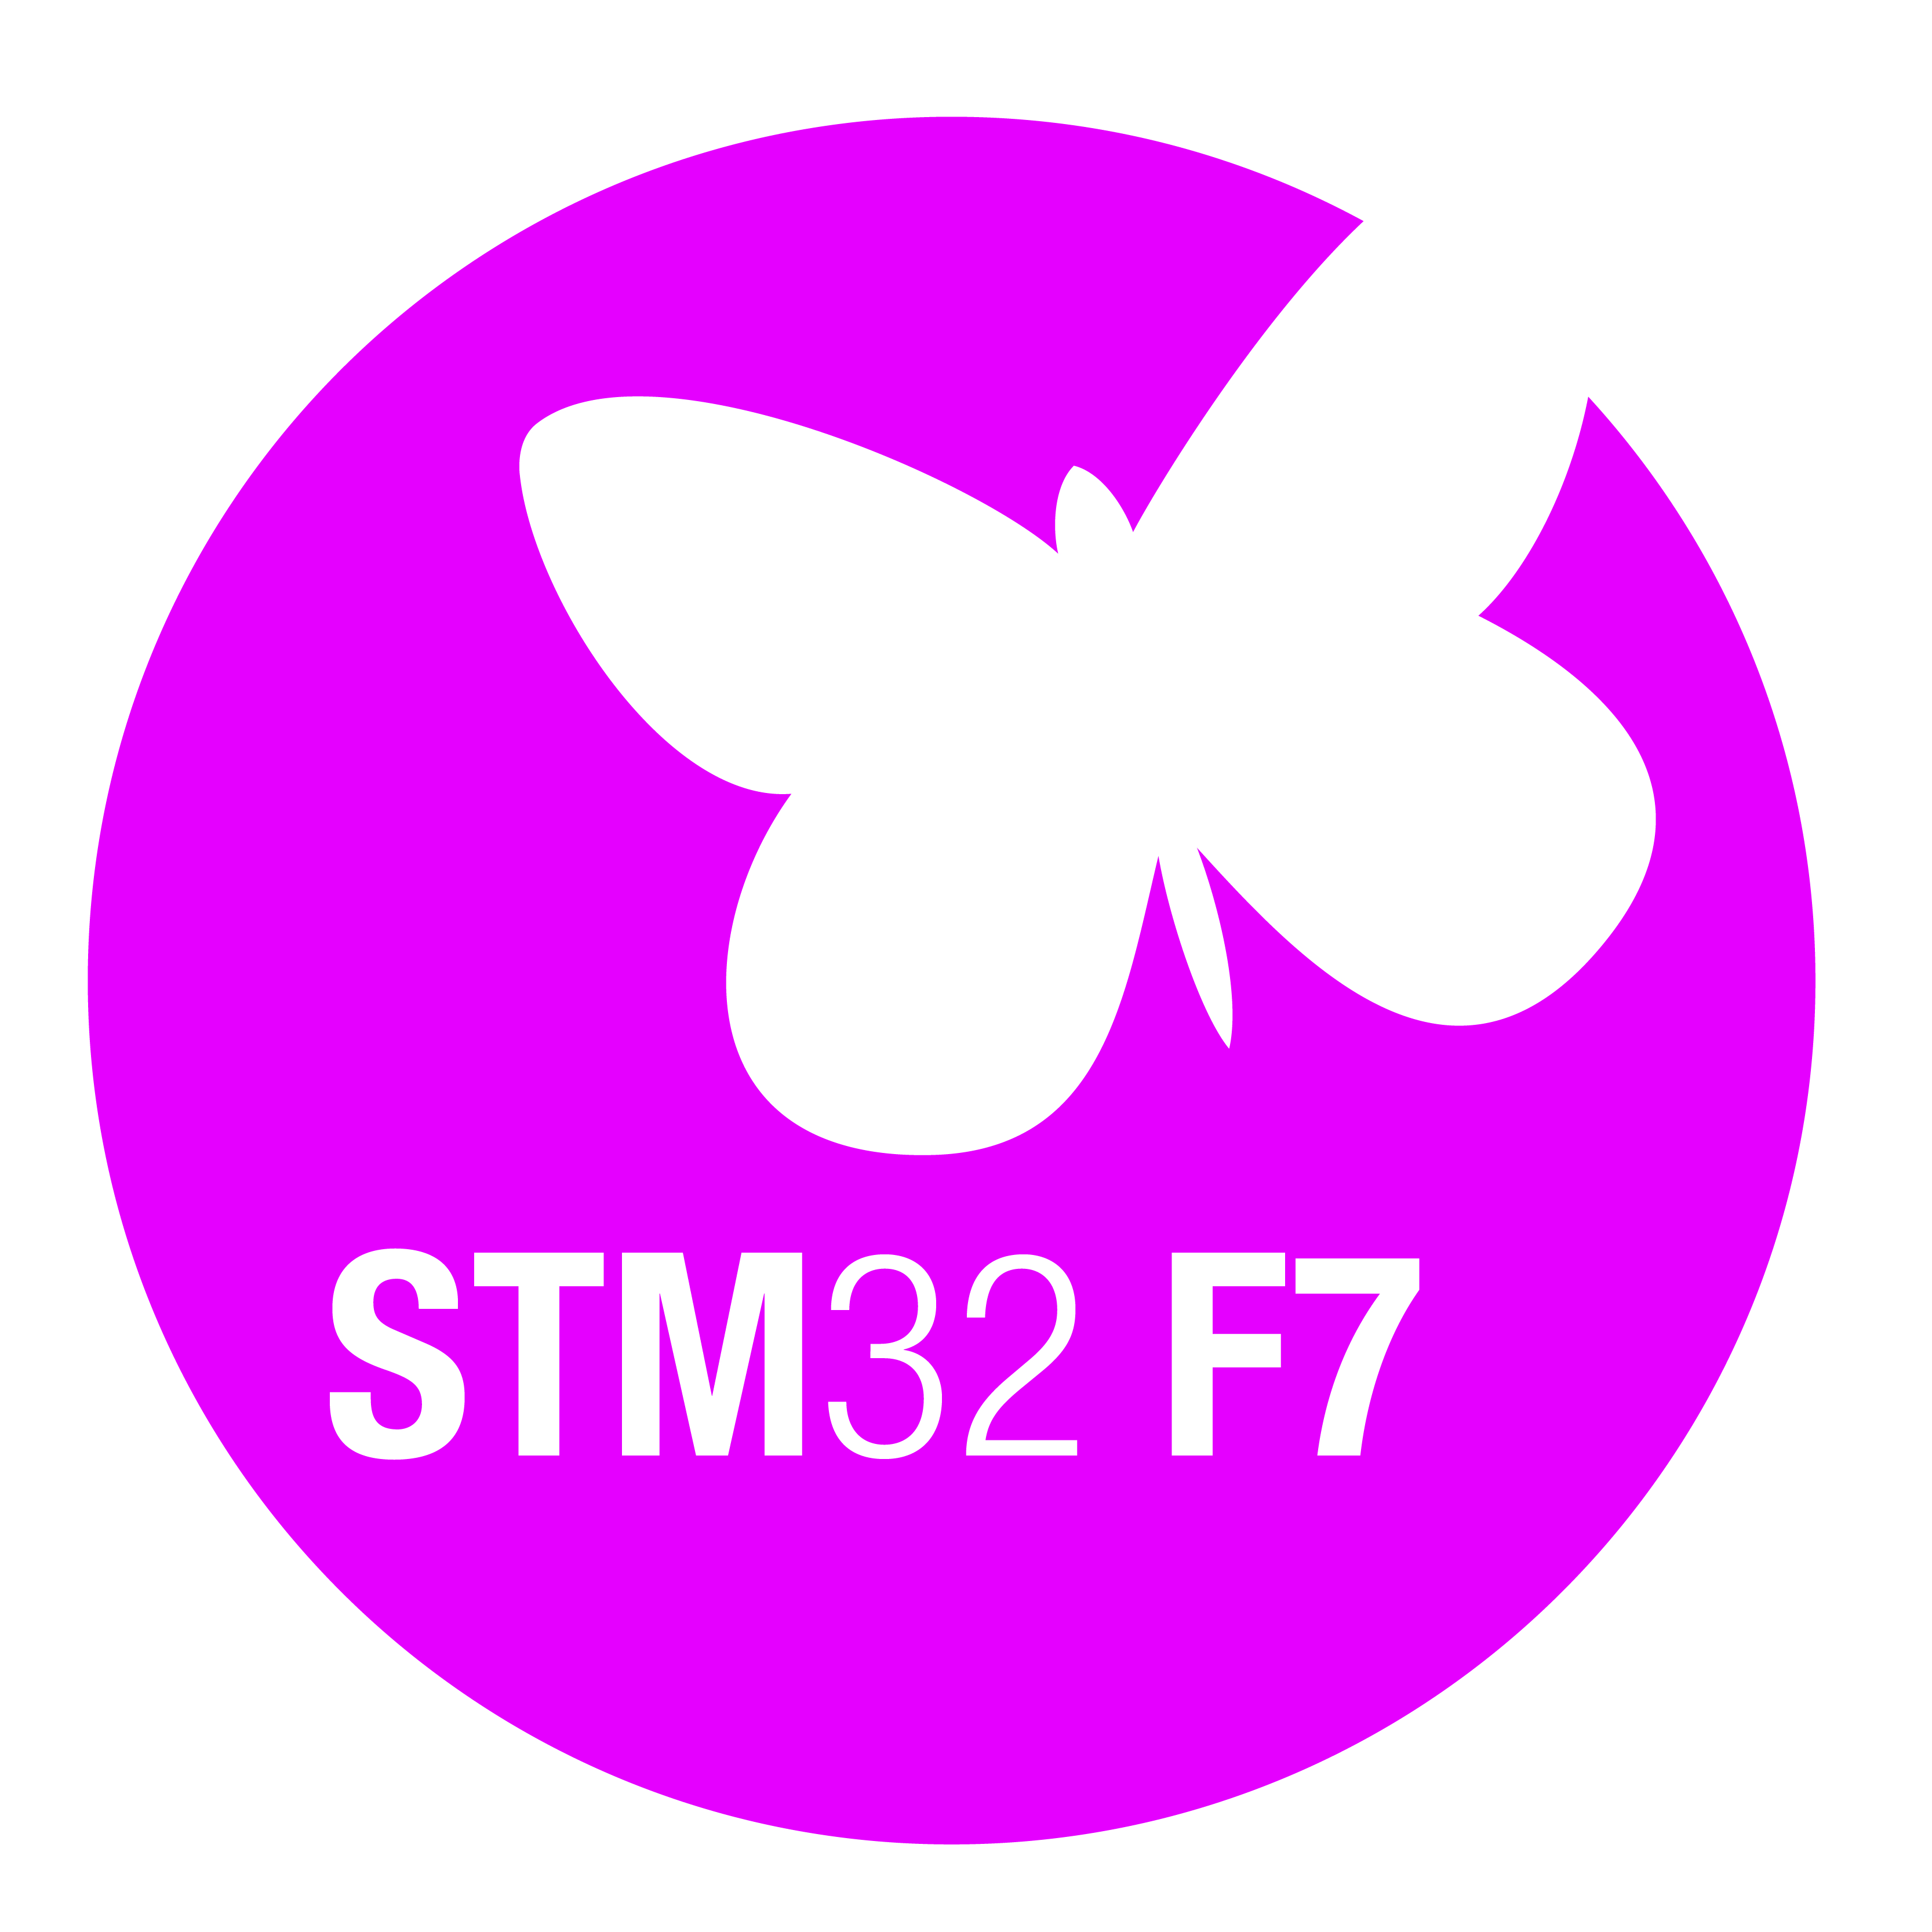 RS2575_RS2575_Module_STM32_F7_for_print.jpg